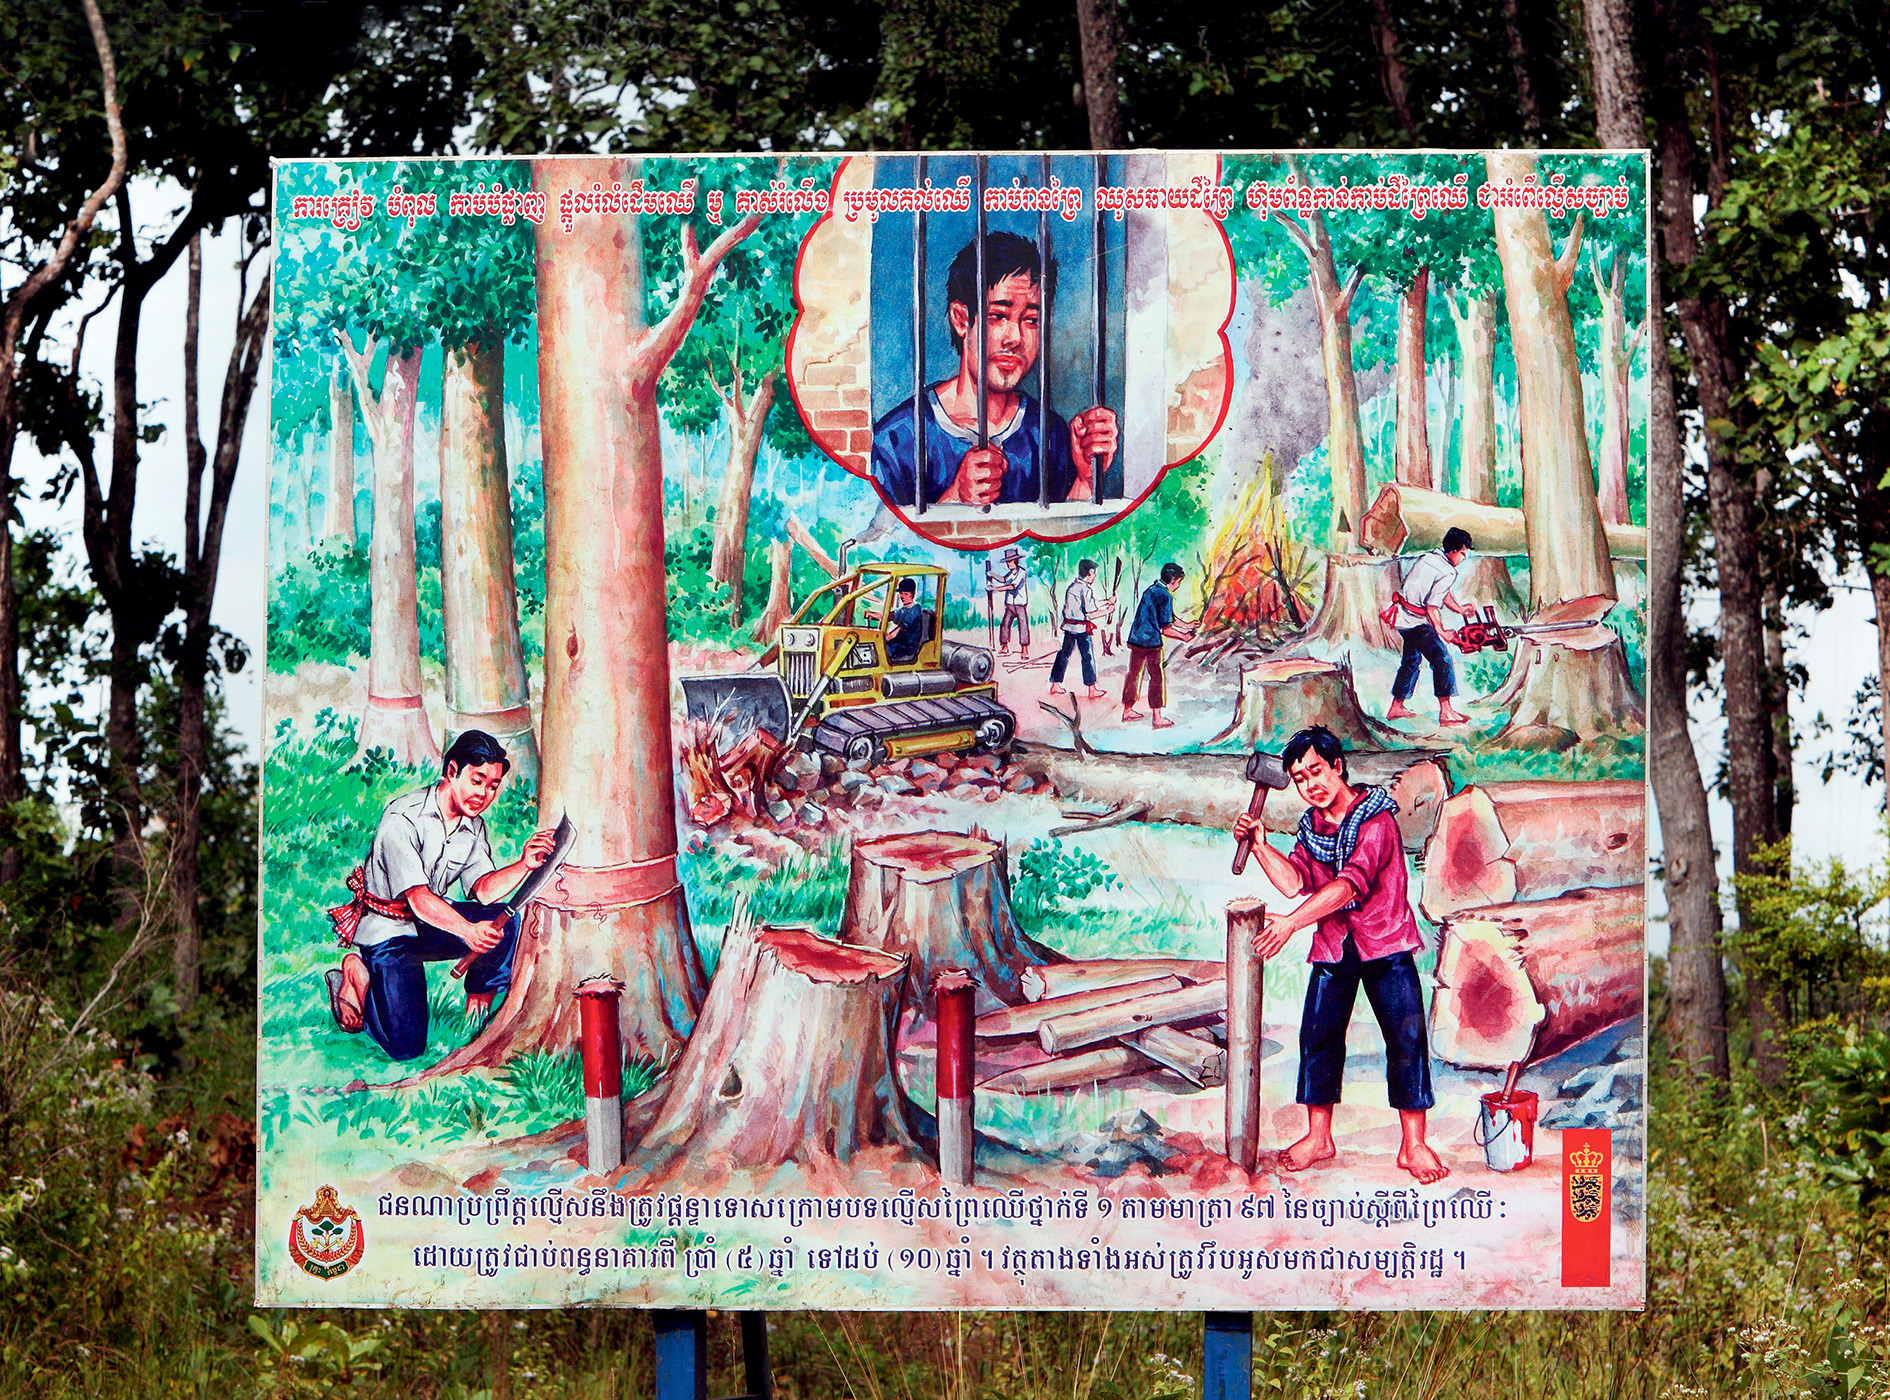 Don't even think about it: a sign in Mondulkiri province in eastern Cambodia warns against illegal logging.